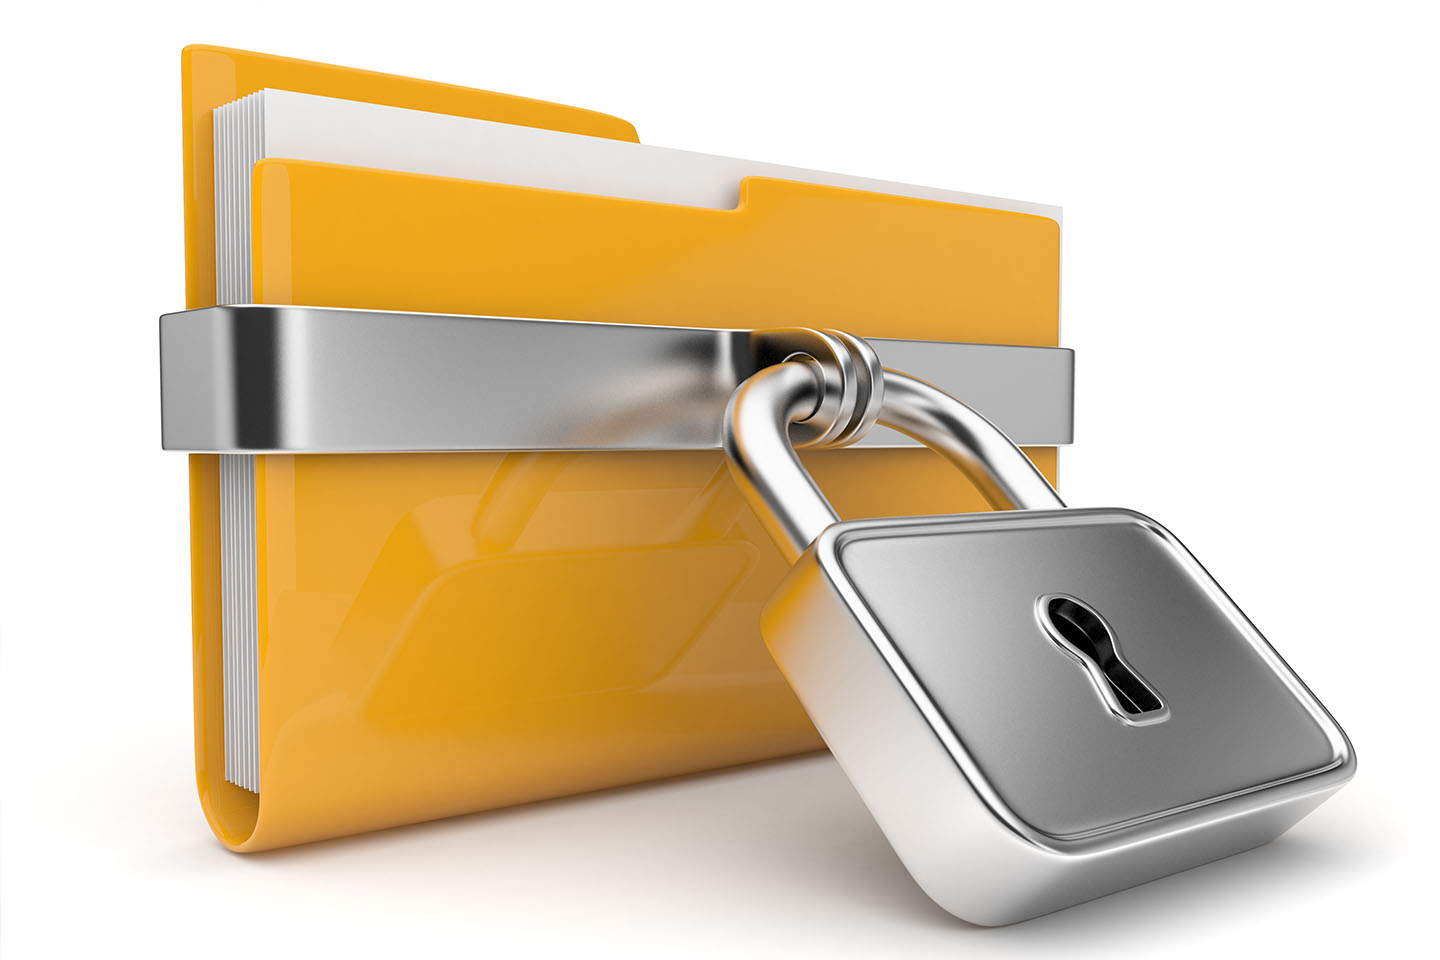 Store your documents safely and security